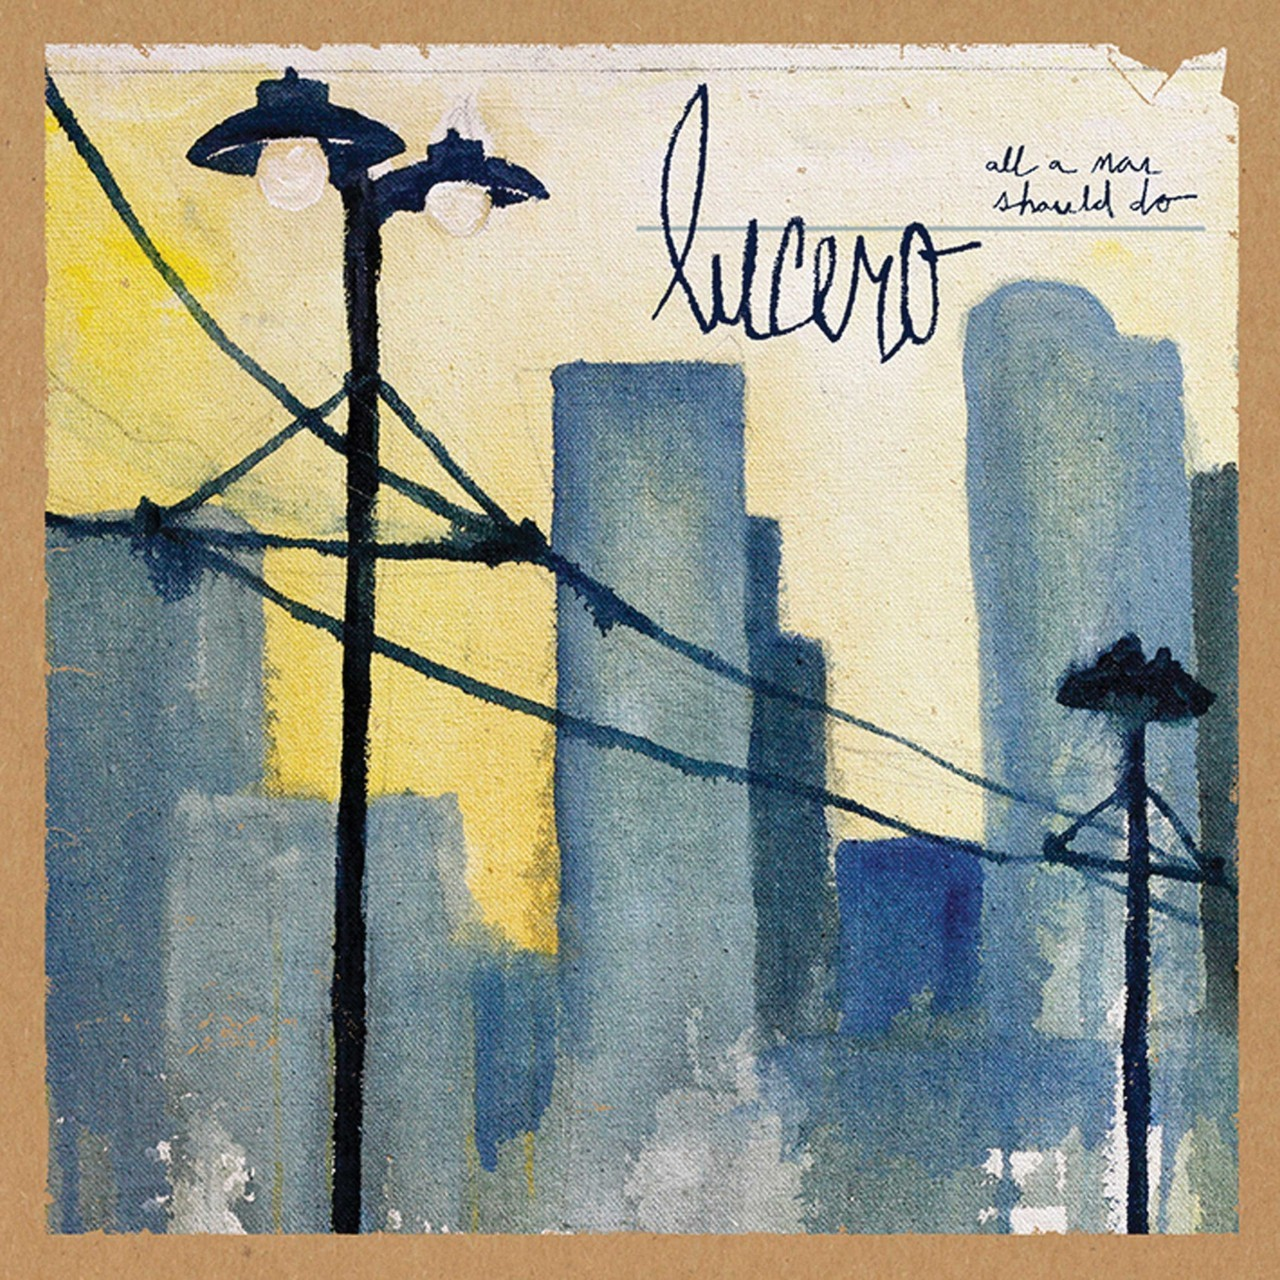 Lucero - All A Man Should Do  LP